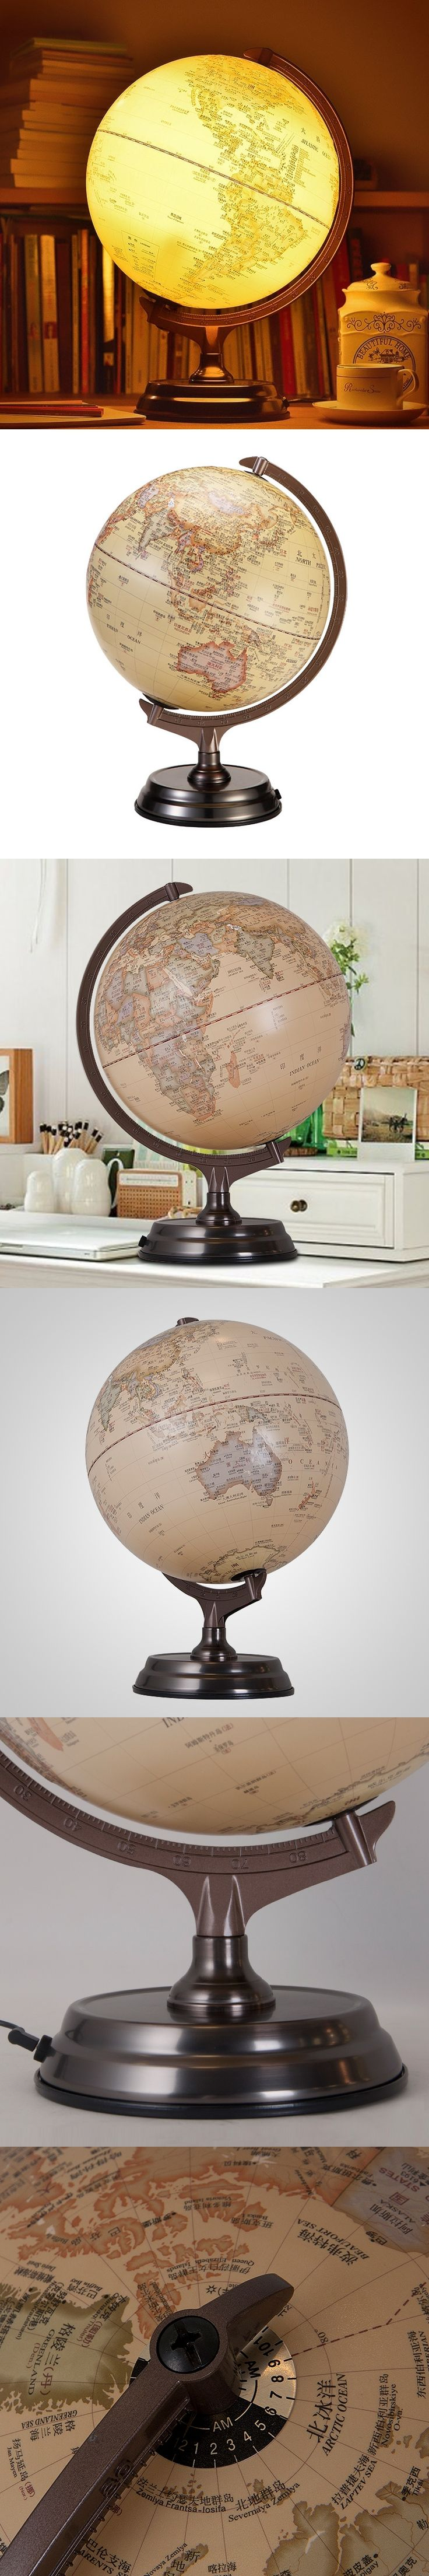 30cm HD Antique 3D Relief Earth Globe Table Lamp Student Kids Geography Gifts Study Office Desk Decor World Map Light Kids Lamps